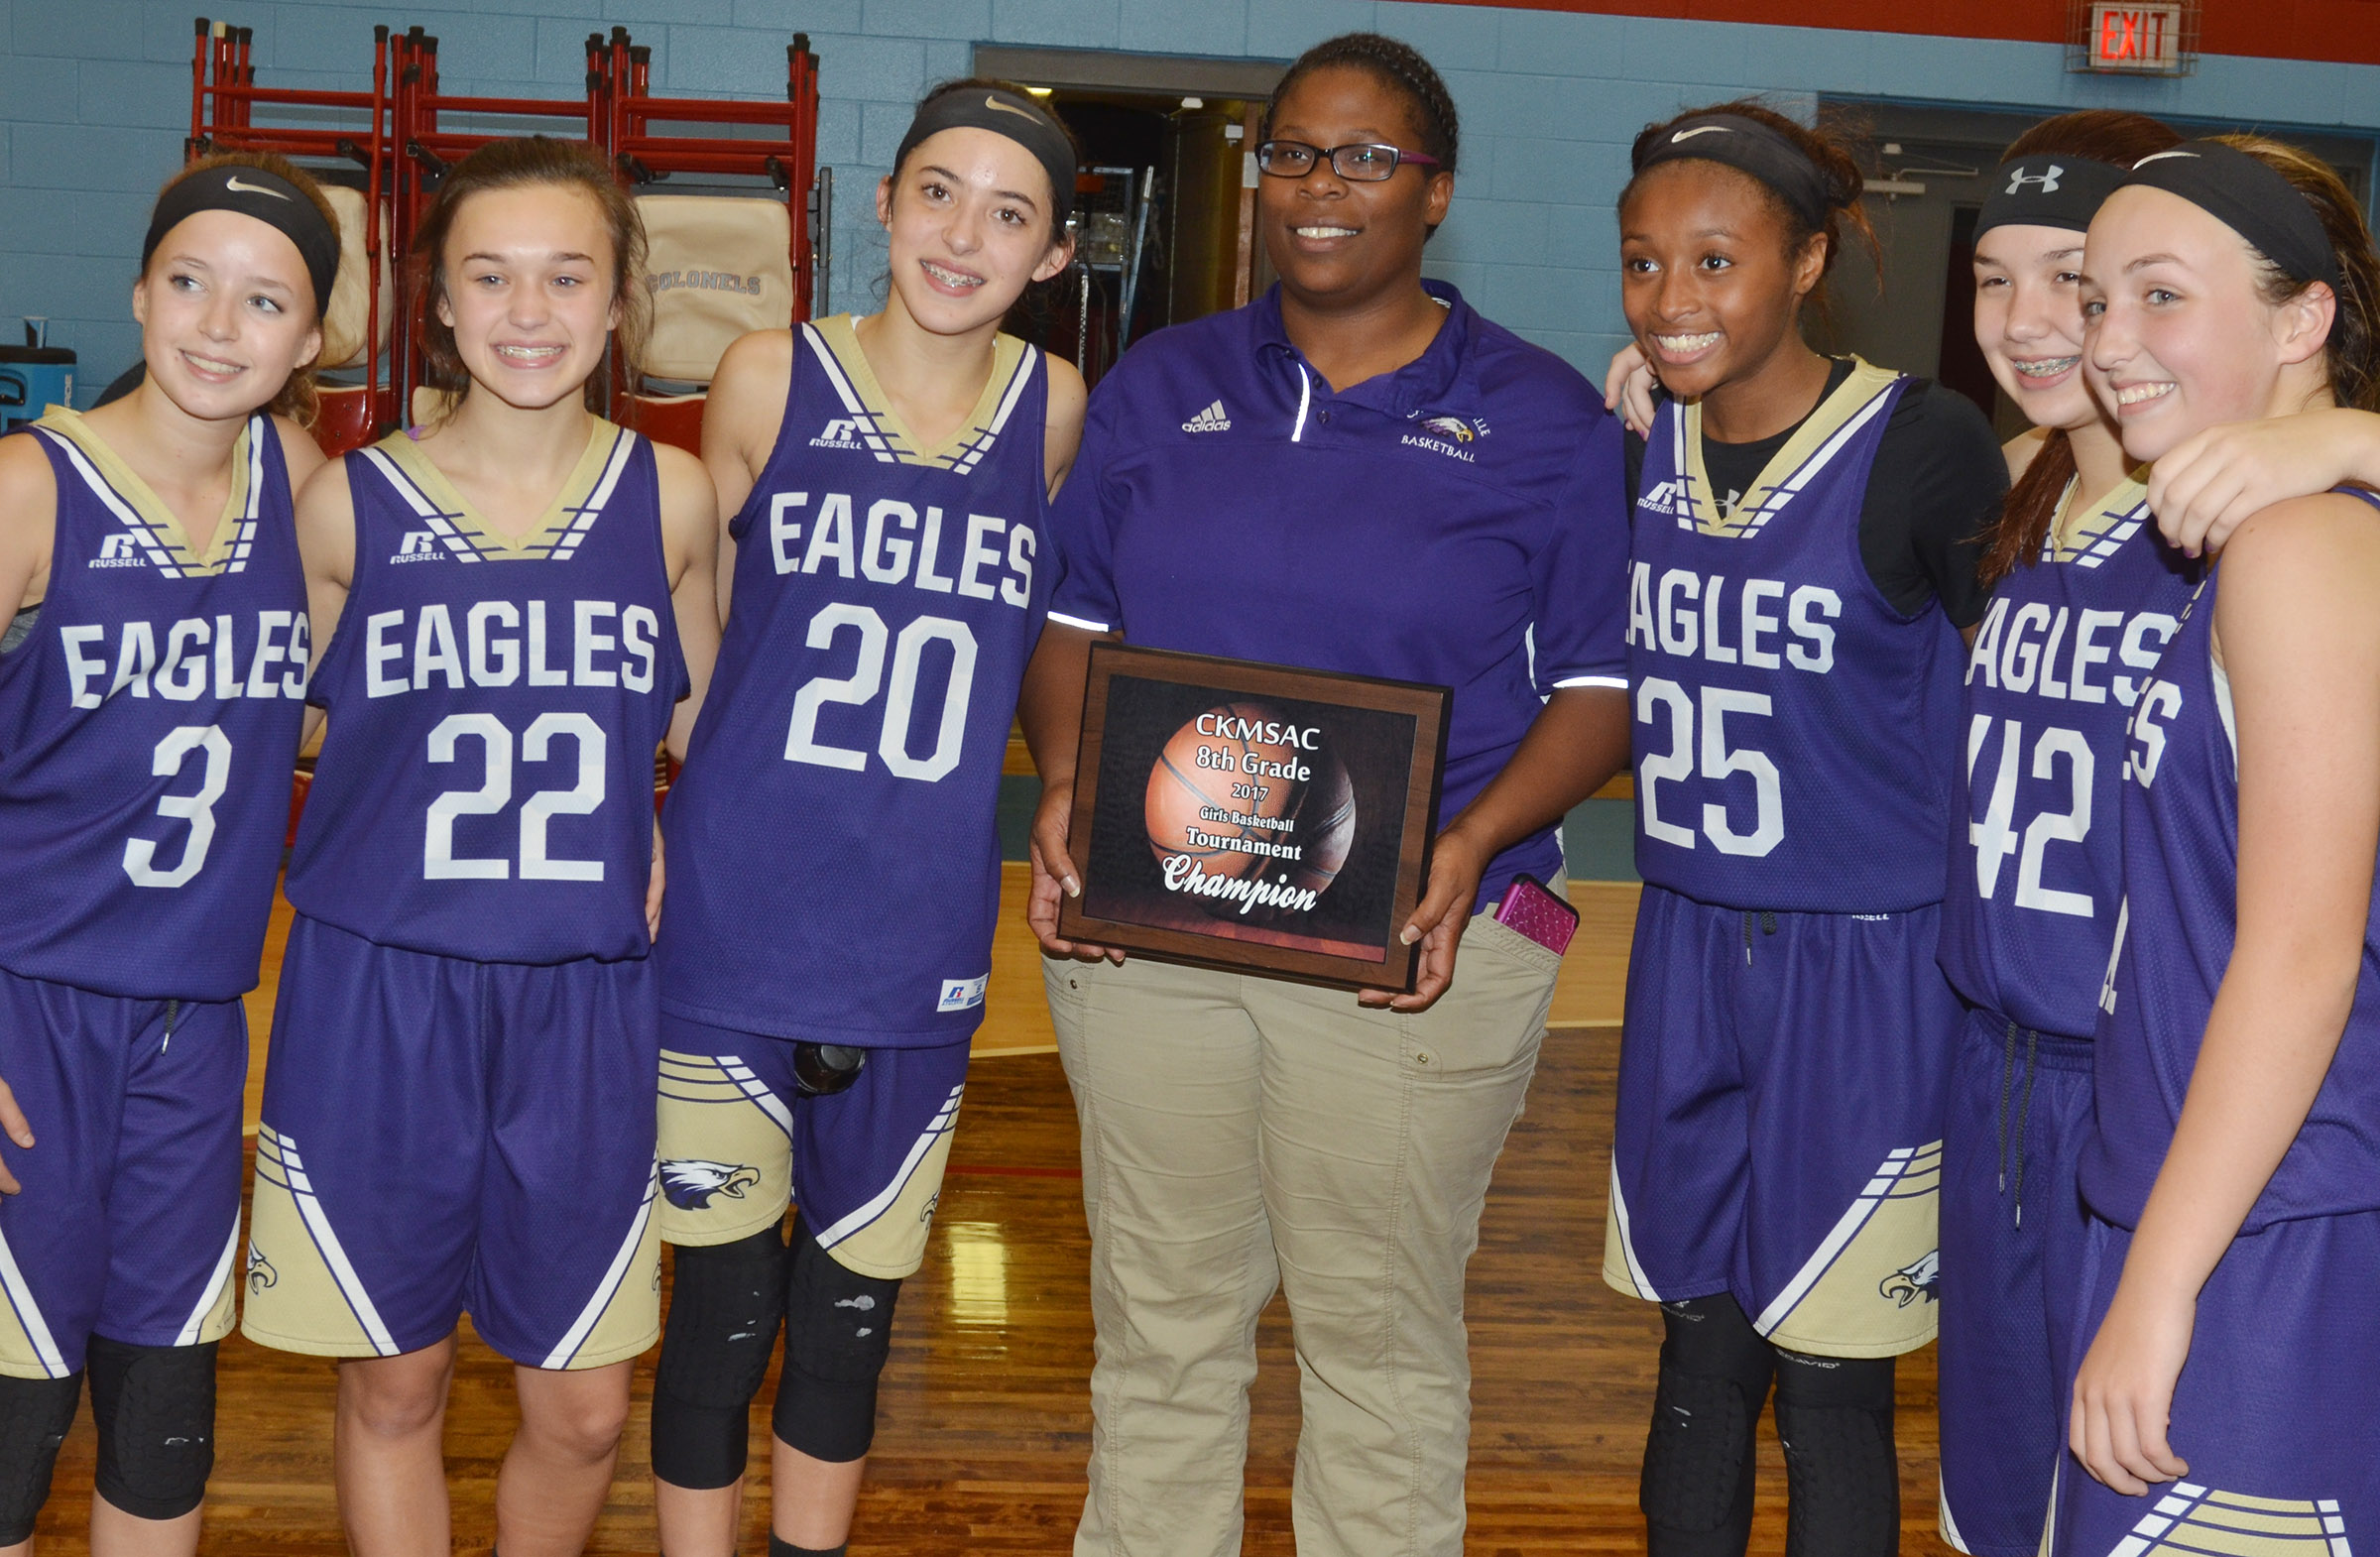 Campbellsville Middle School girls' eighth-grade basketball team recently won its first Central Kentucky Middle School Athletic Conference tournament championship title in 20 years. From left are eighth-graders Rylee Petett, Tayler Thompson and Kaylyn Smith, head coach Tiarra Cecil and eighth-graders Bri Gowdy, Olivia Fields and Lainey Watson.